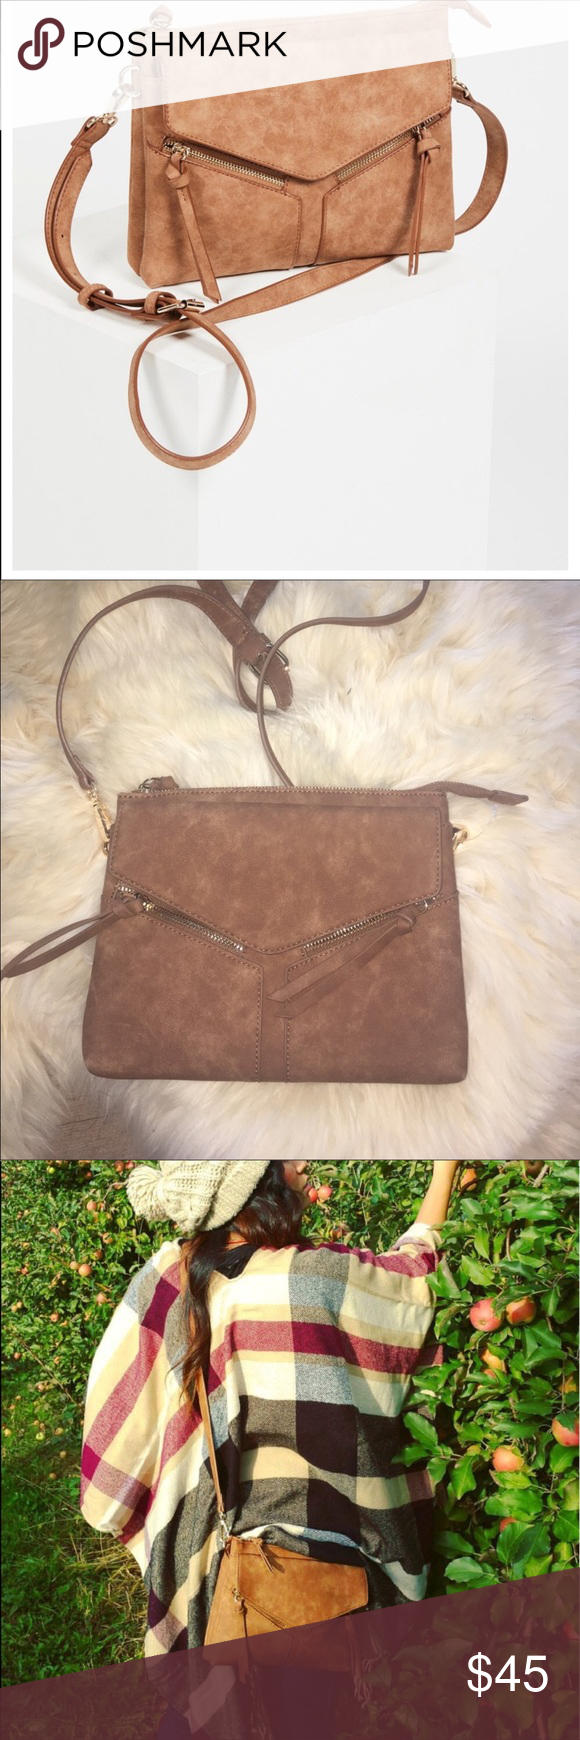 5d74574414 Free People Laurie Vegan Crossbody in Cognac From Free People Line Violet  Ray Violet Ray Leanna faux leather crossbody bag. Magnetic snap button flap  pocket ...